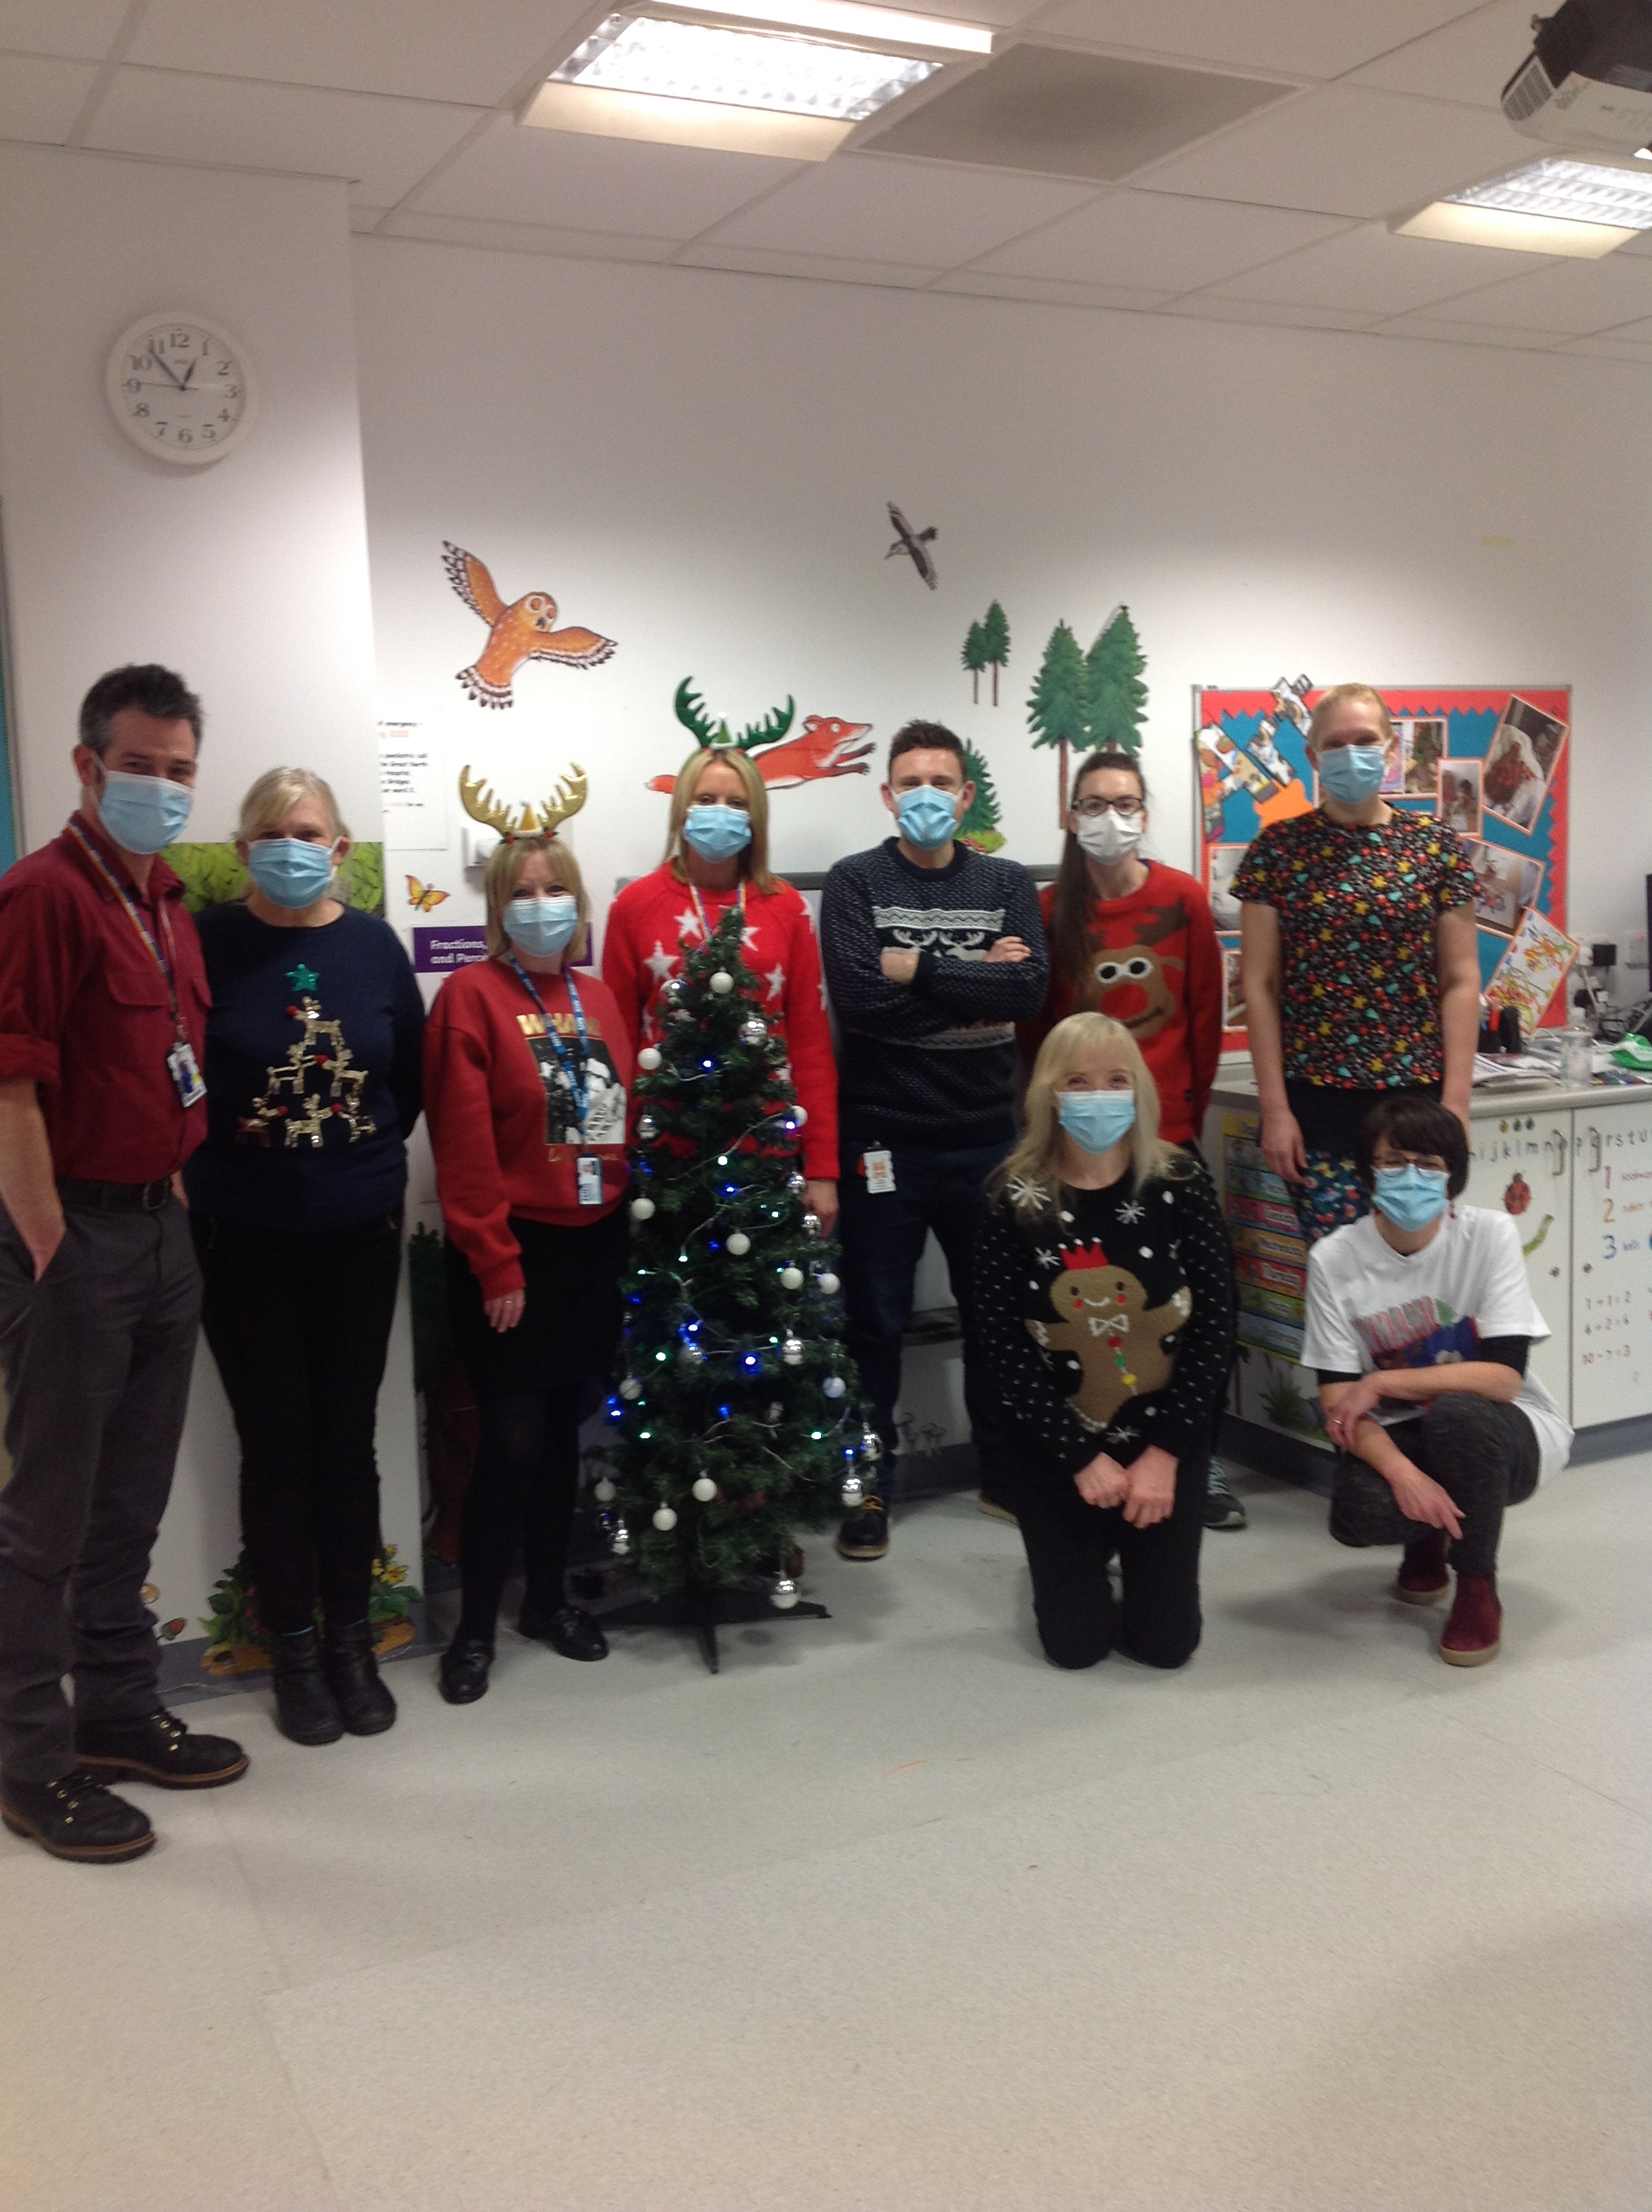 Merry Christmas from Our Lovely Team at the GNCH